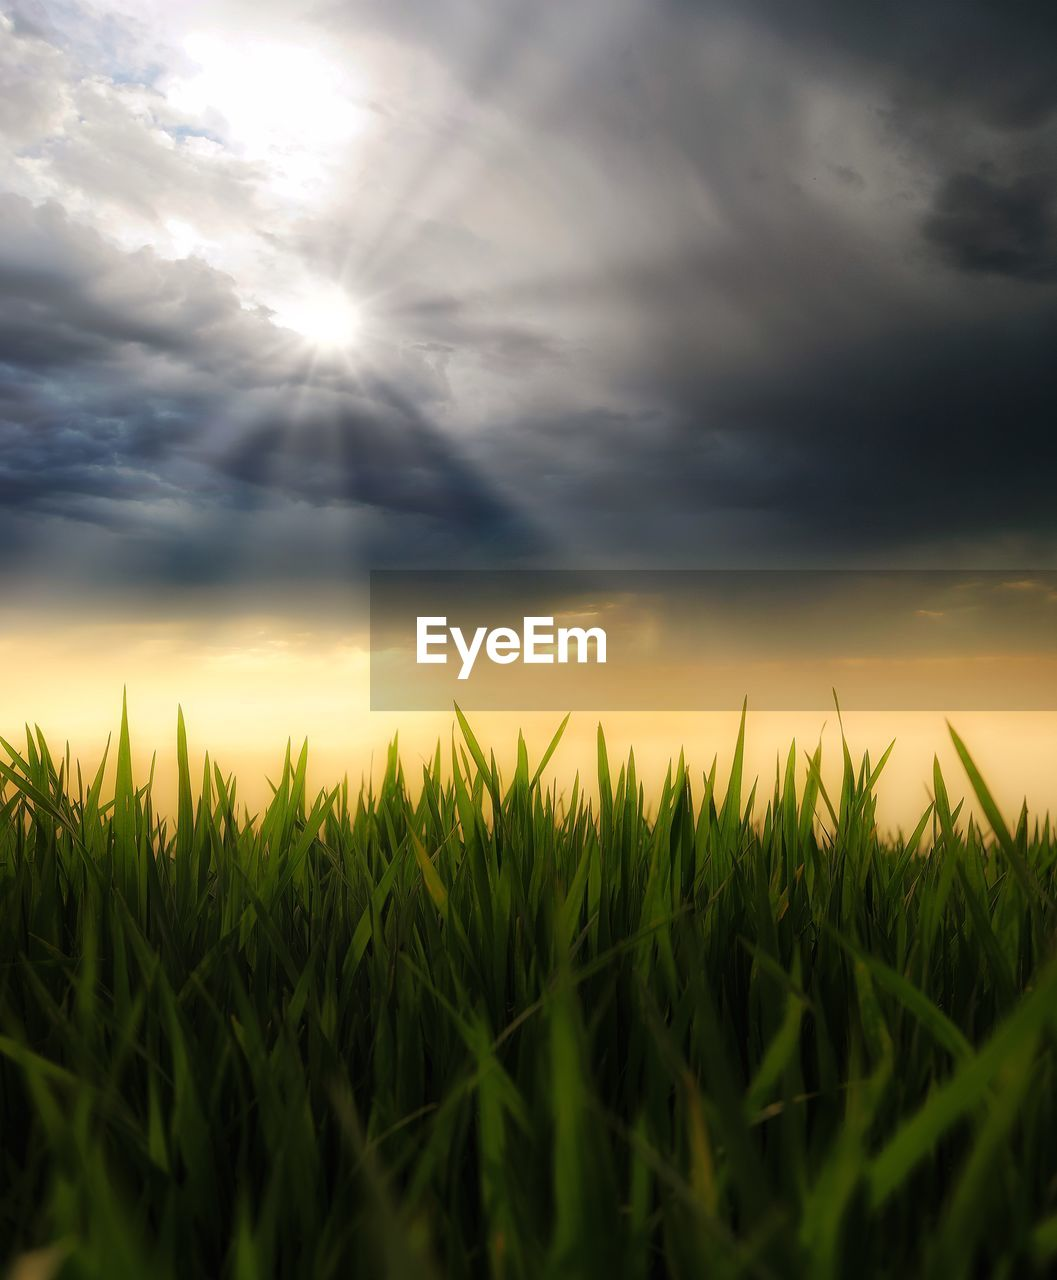 sky, cloud - sky, growth, plant, beauty in nature, land, field, tranquility, agriculture, nature, crop, tranquil scene, sun, scenics - nature, rural scene, sunlight, grass, sunset, landscape, no people, outdoors, lens flare, blade of grass